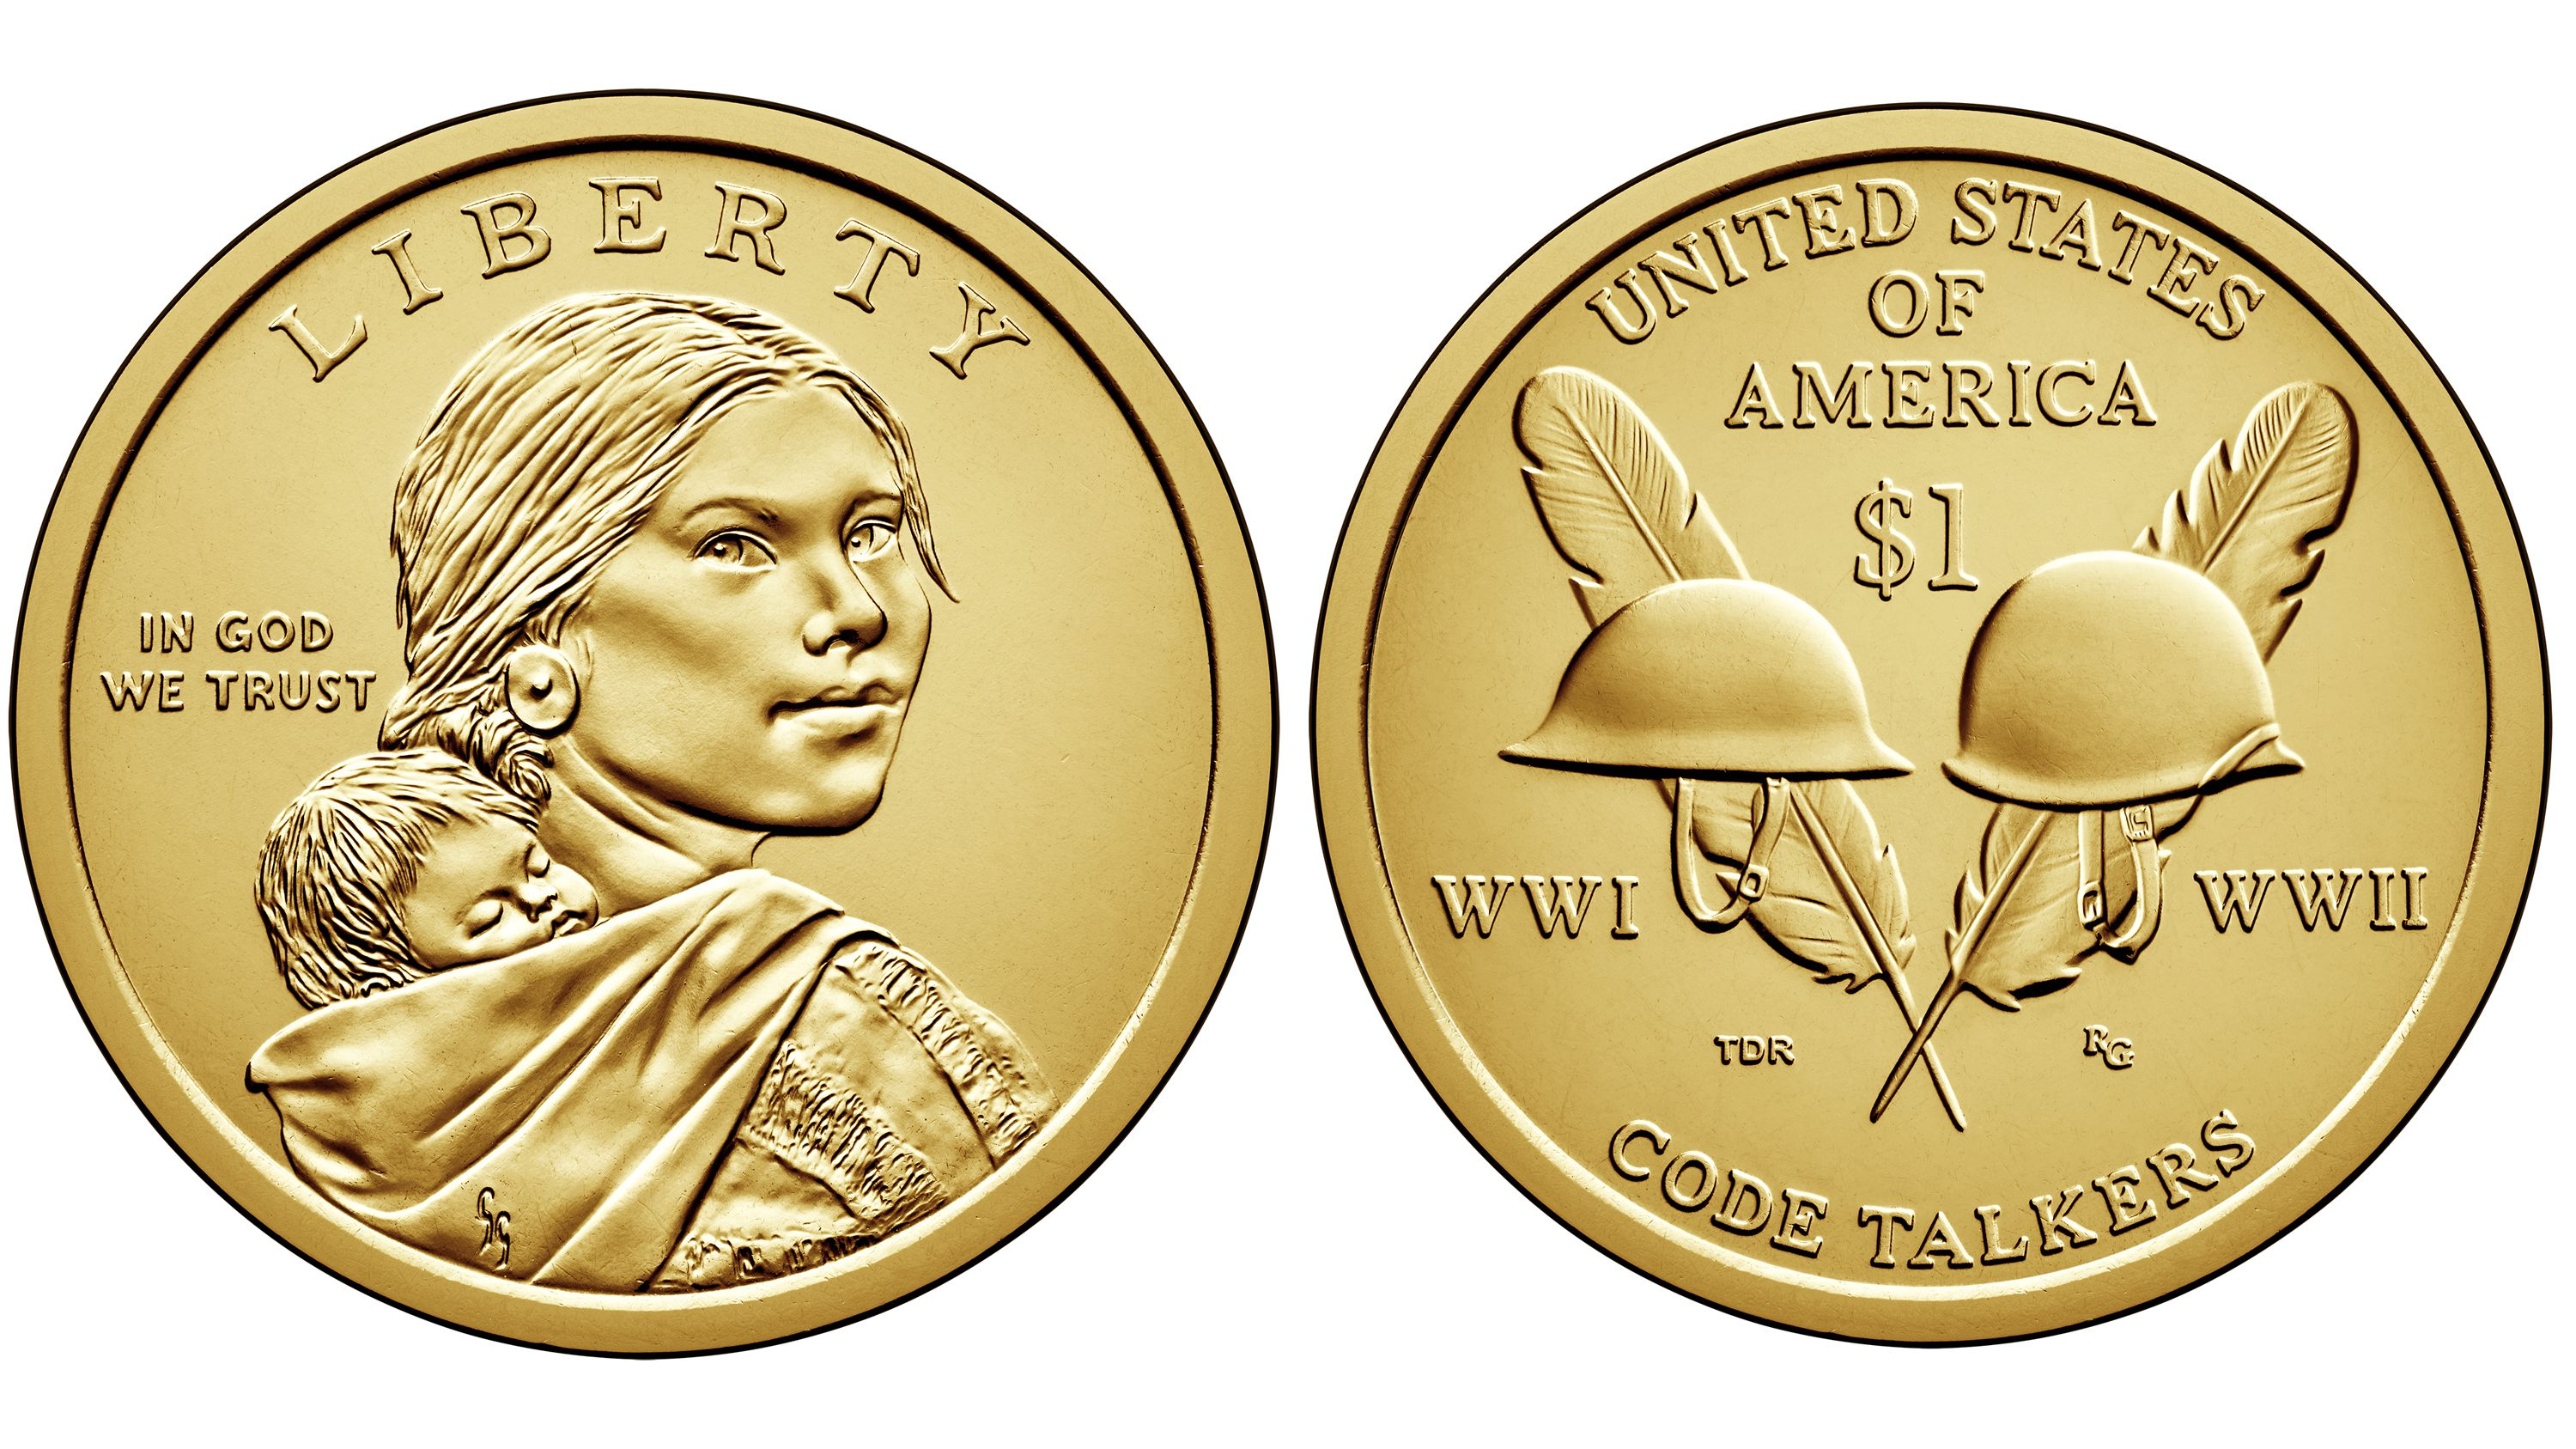 2005 P/&D Native American Indian One Dollar Sacagawea Coins Golden US Mint Coin